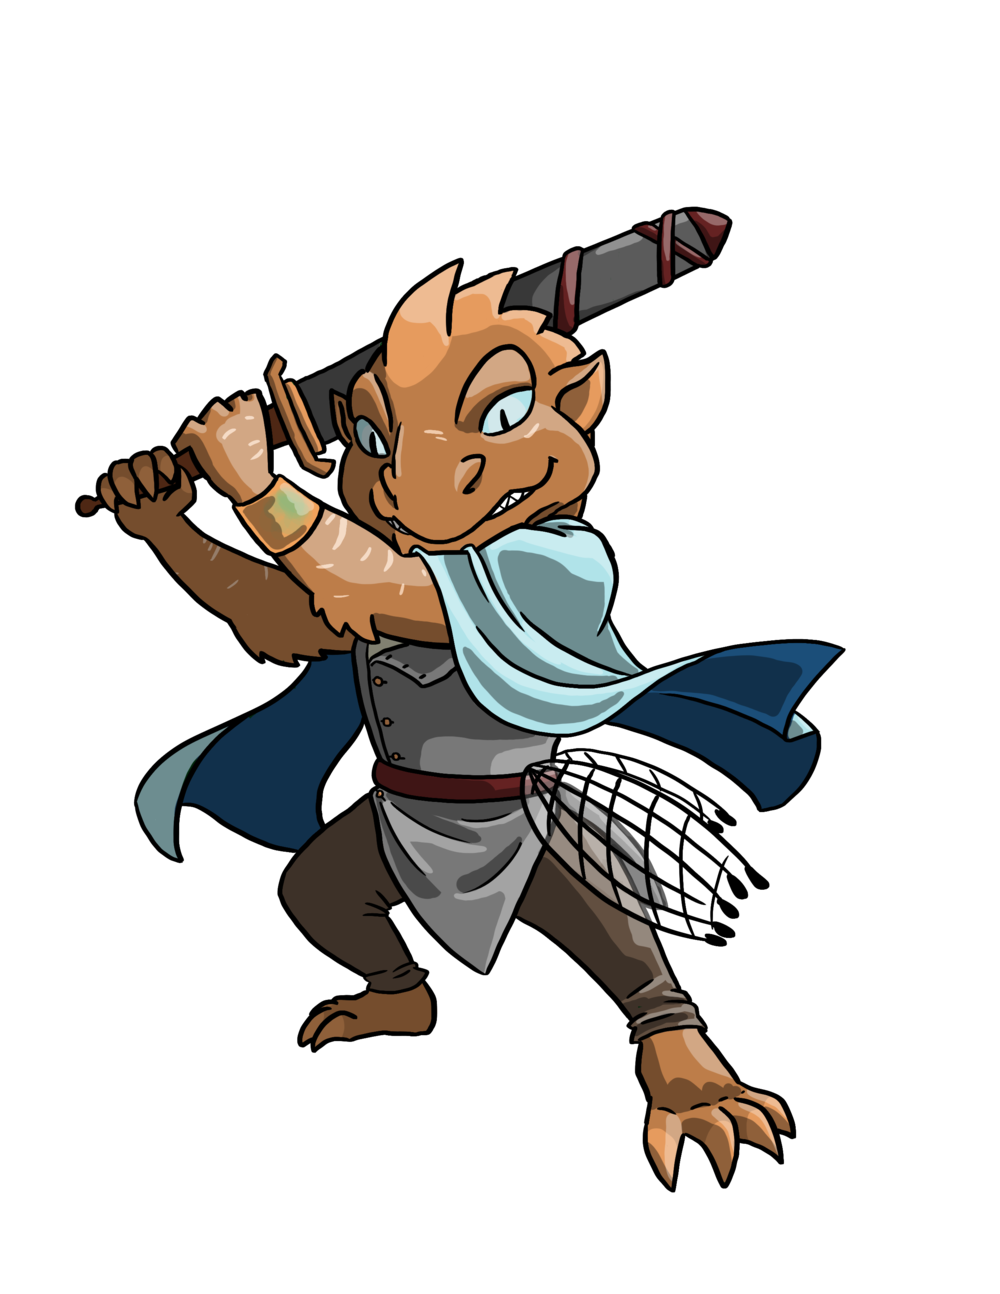 Arnaar Jerynomonis - Arnaar Jerynomonis has been a sailor since he was young man, working his way up the Ishi Kari fleet. However, after the cataclysm there has been disunity and a lack of consistent jobs. Now Arnaar heads to the city of Mezomola with a new job and a new adventure in his wake.Arnaar Jerynomonis is played by Alex Bissonnette and works in Aircraft Maintenance in Tacoma, Washington.